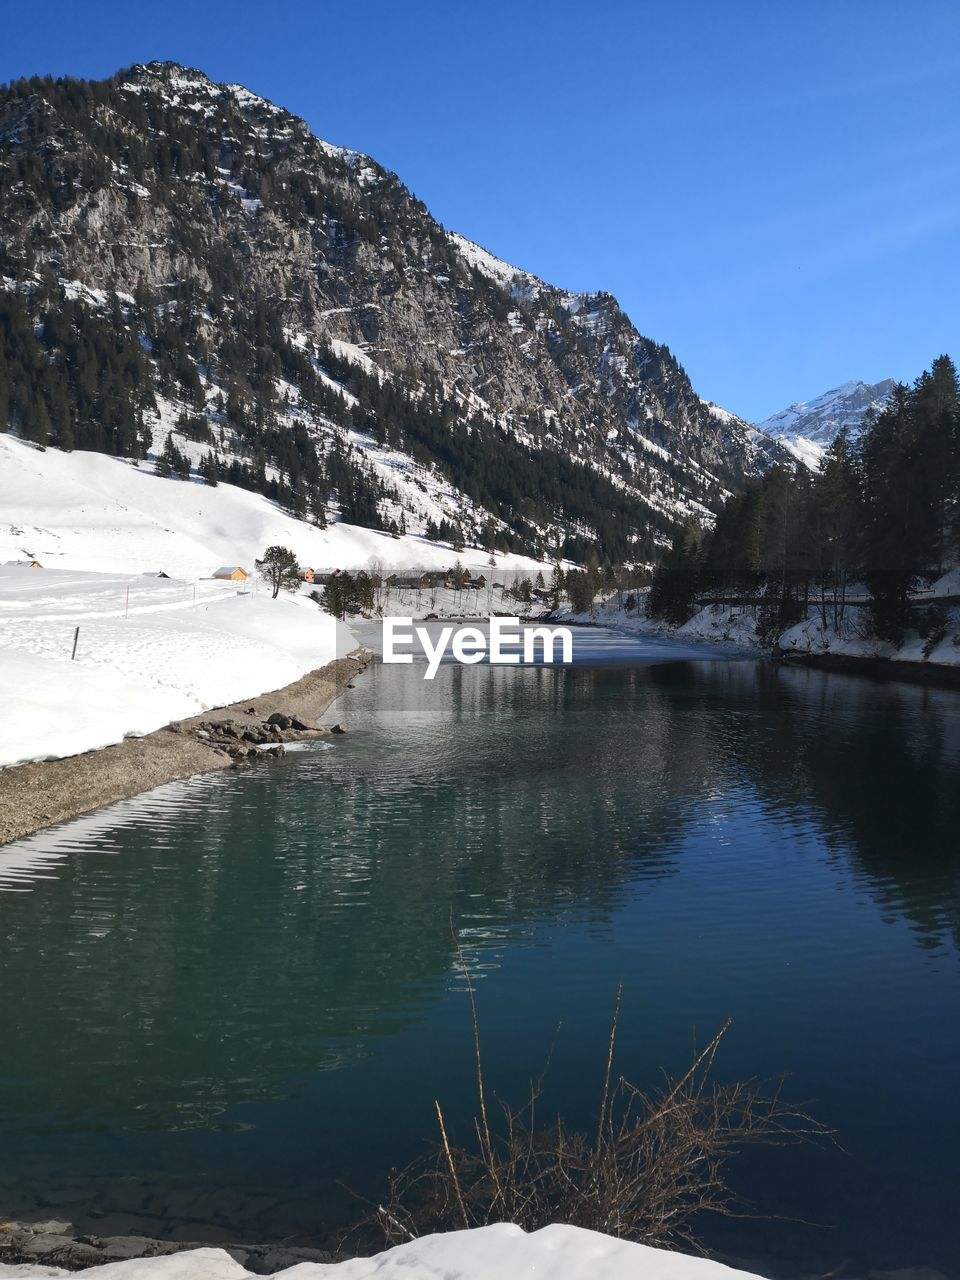 water, mountain, lake, scenics - nature, beauty in nature, tranquility, sky, tranquil scene, cold temperature, nature, day, winter, no people, reflection, snow, non-urban scene, plant, environment, outdoors, snowcapped mountain